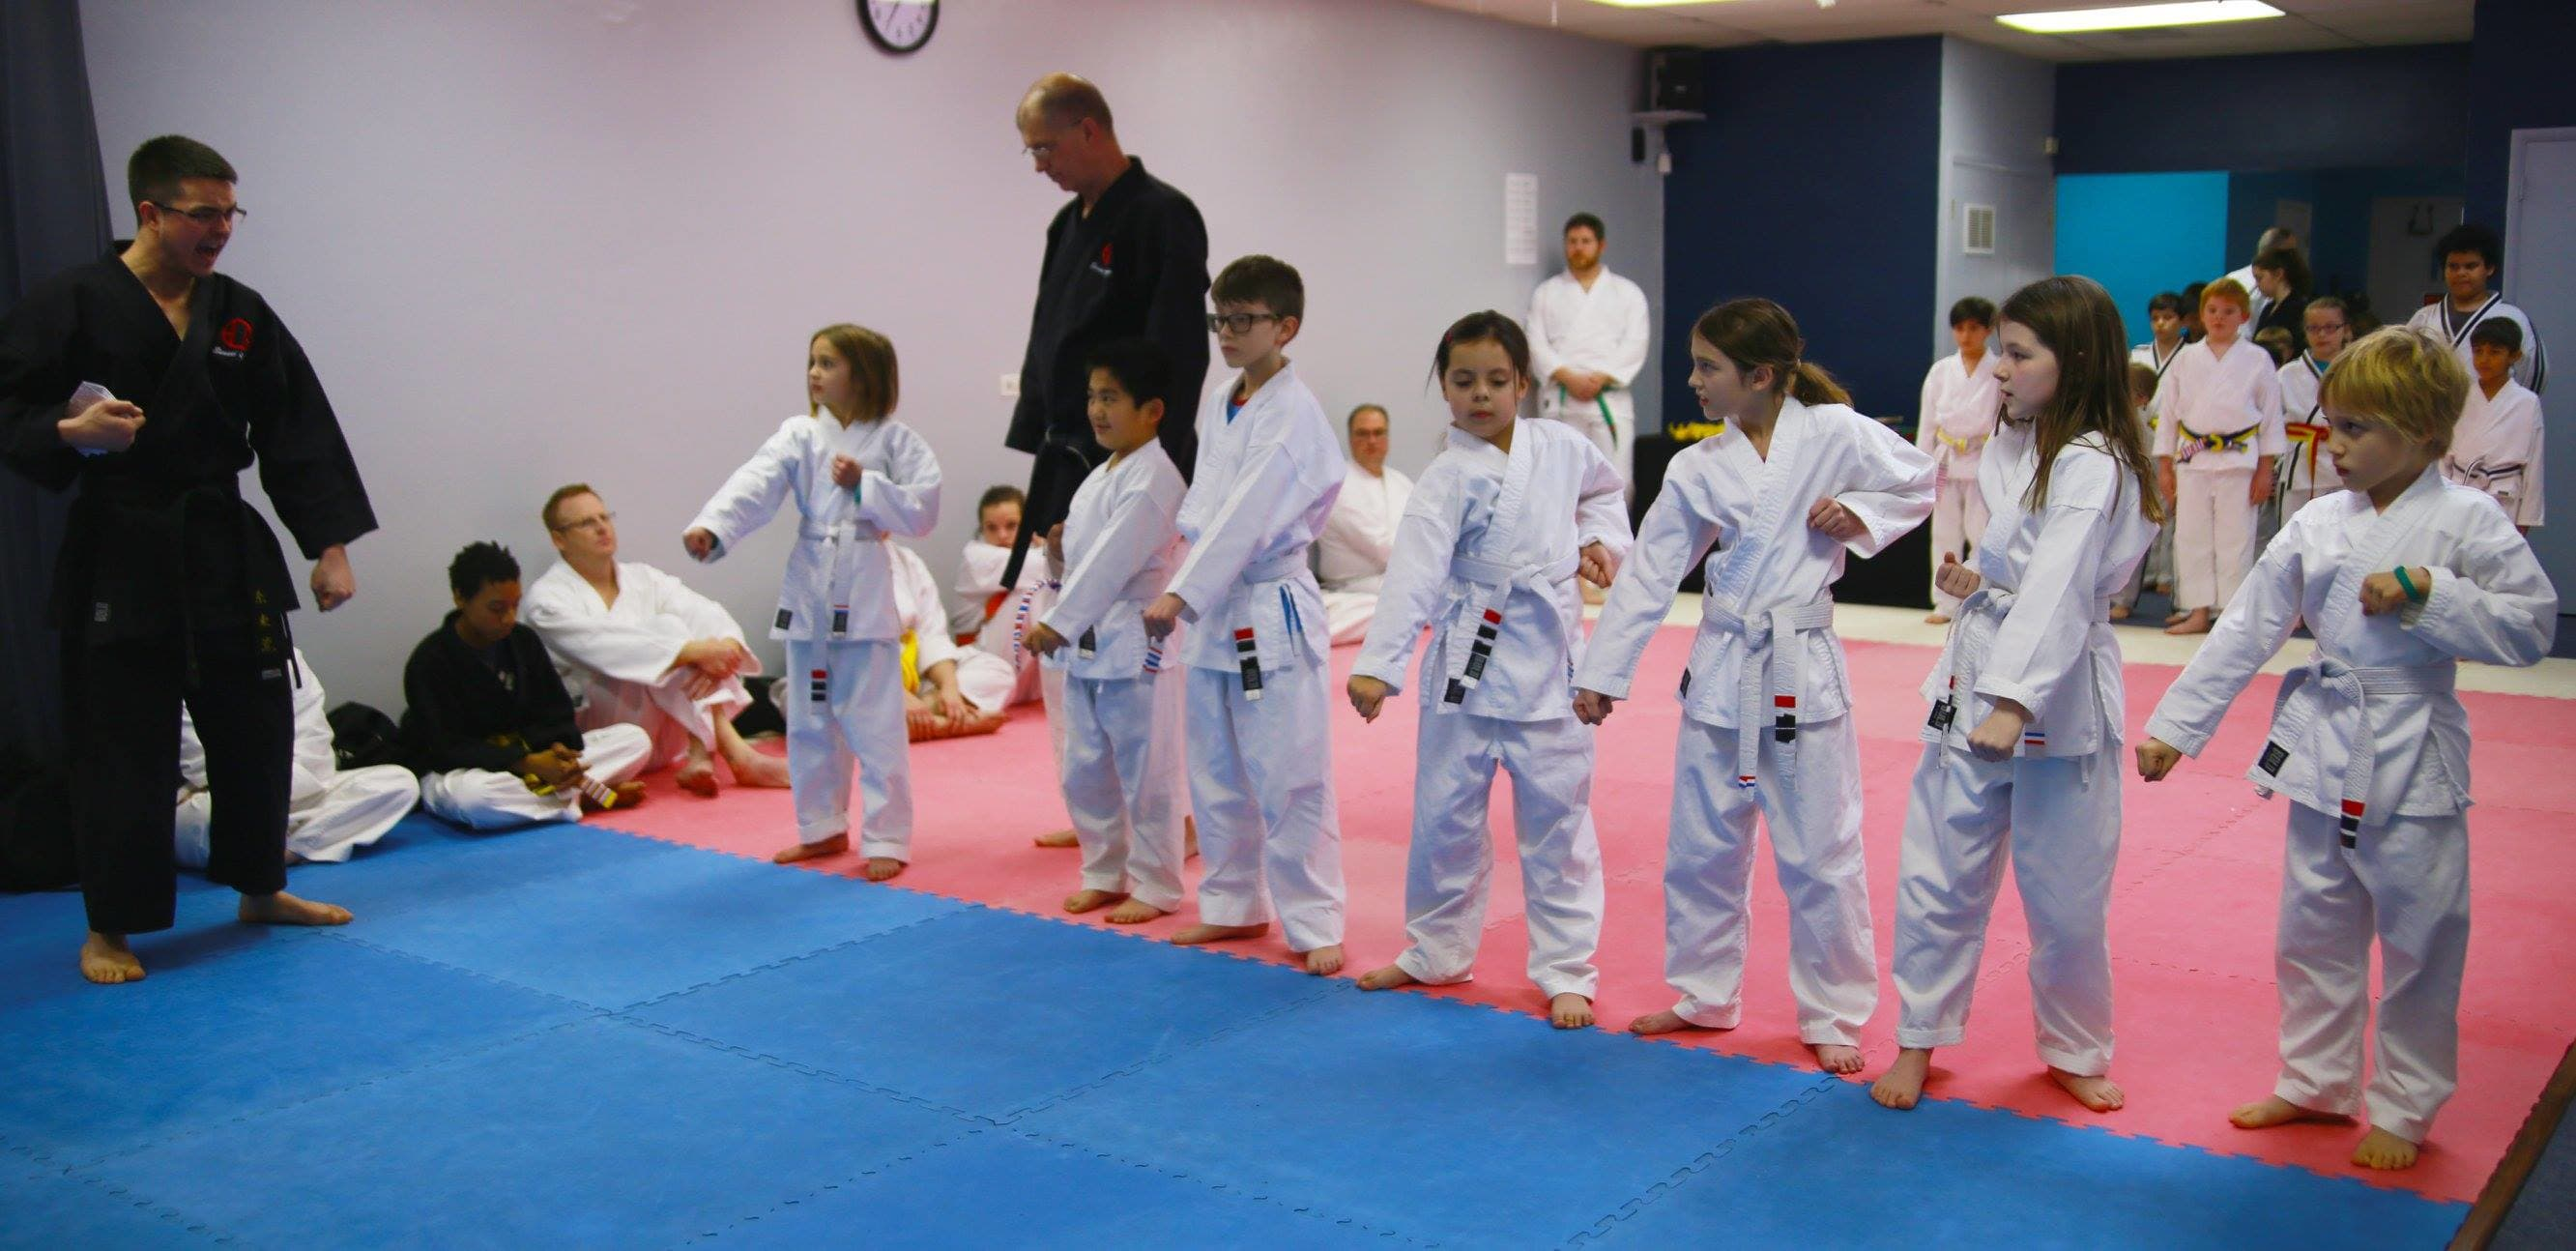 "<h2><span style=""color:#ffffff;"">Karate Training At Age 4 To Adults in St. Louis</span></h2>"